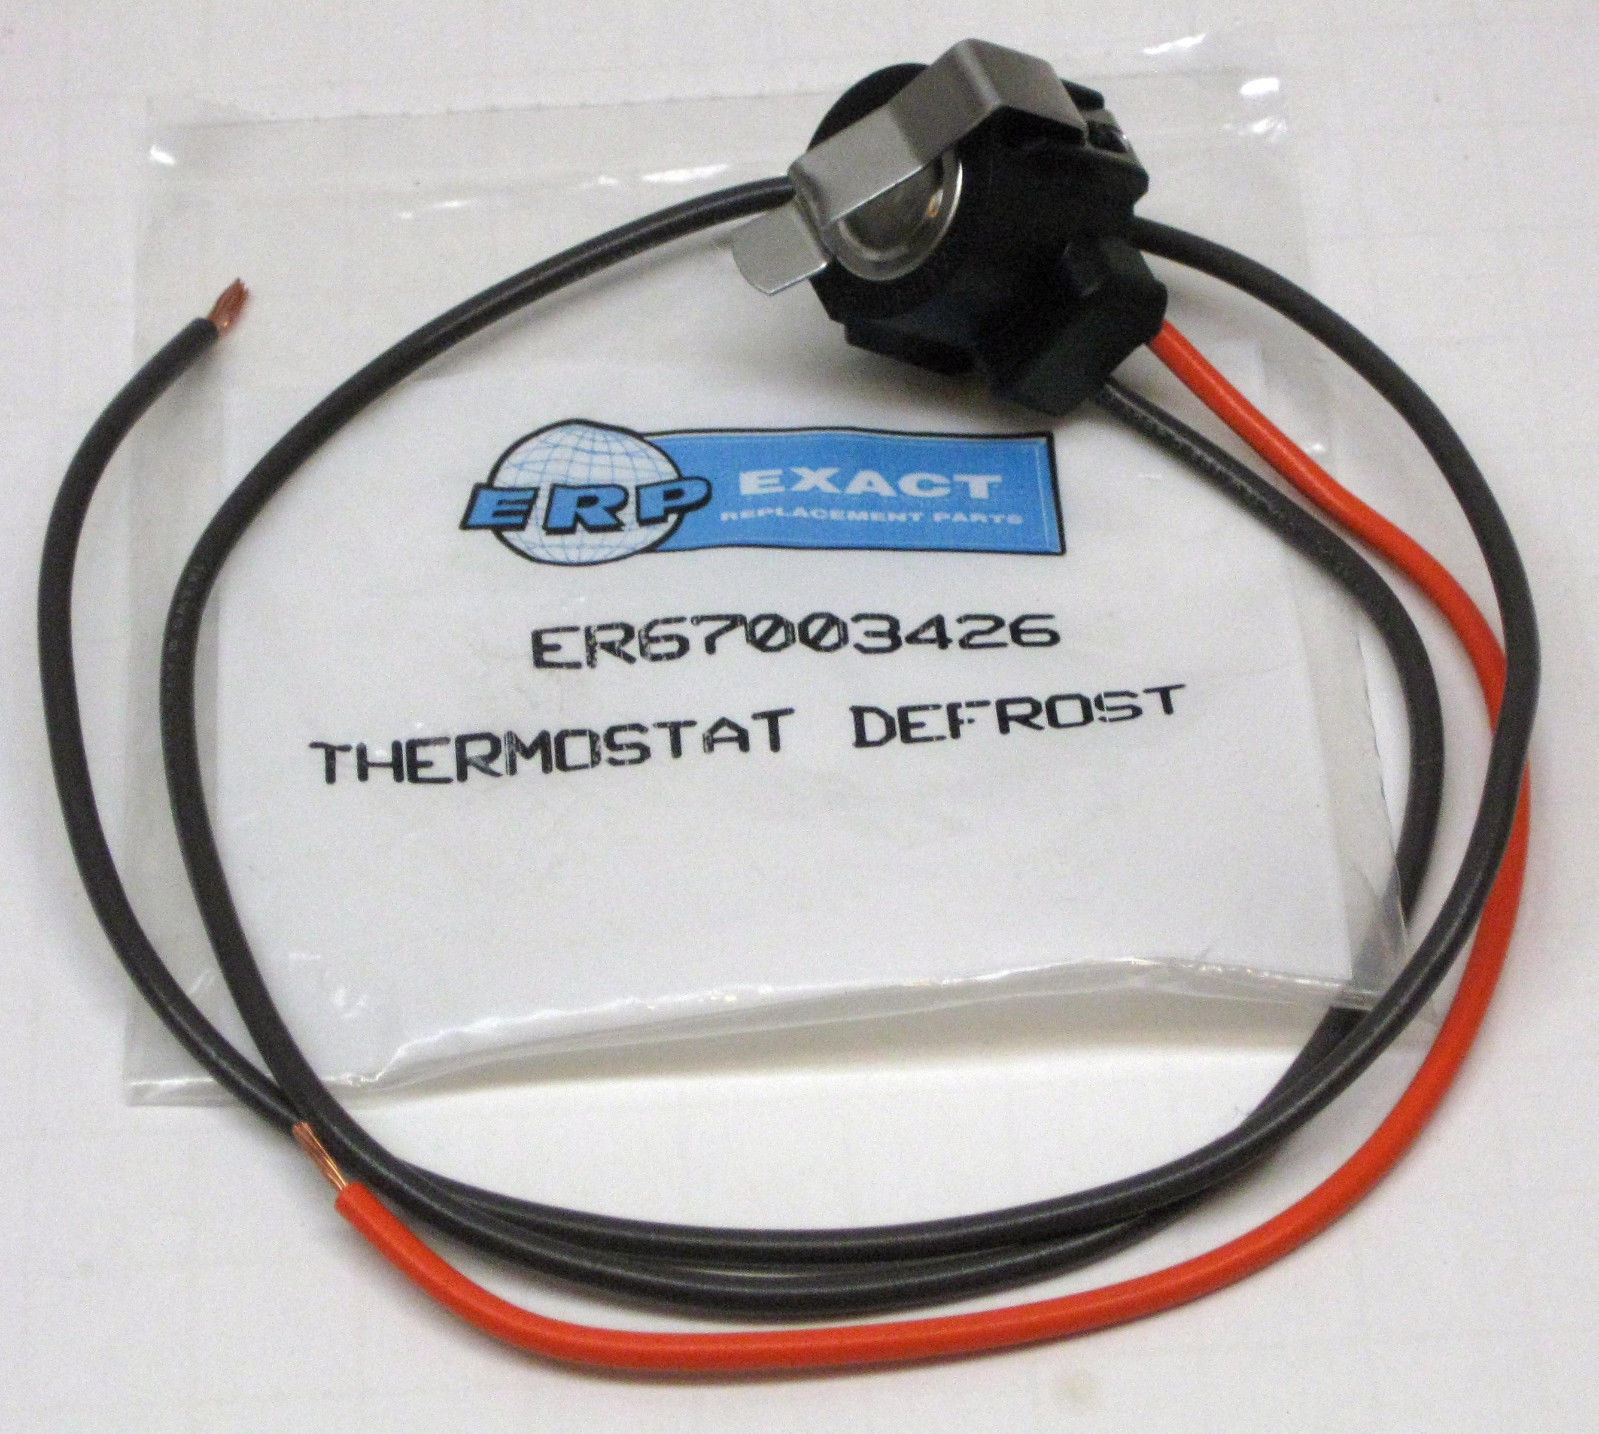 Wp67003426 For Whirlpool Maytag Refrigerator Thermostat